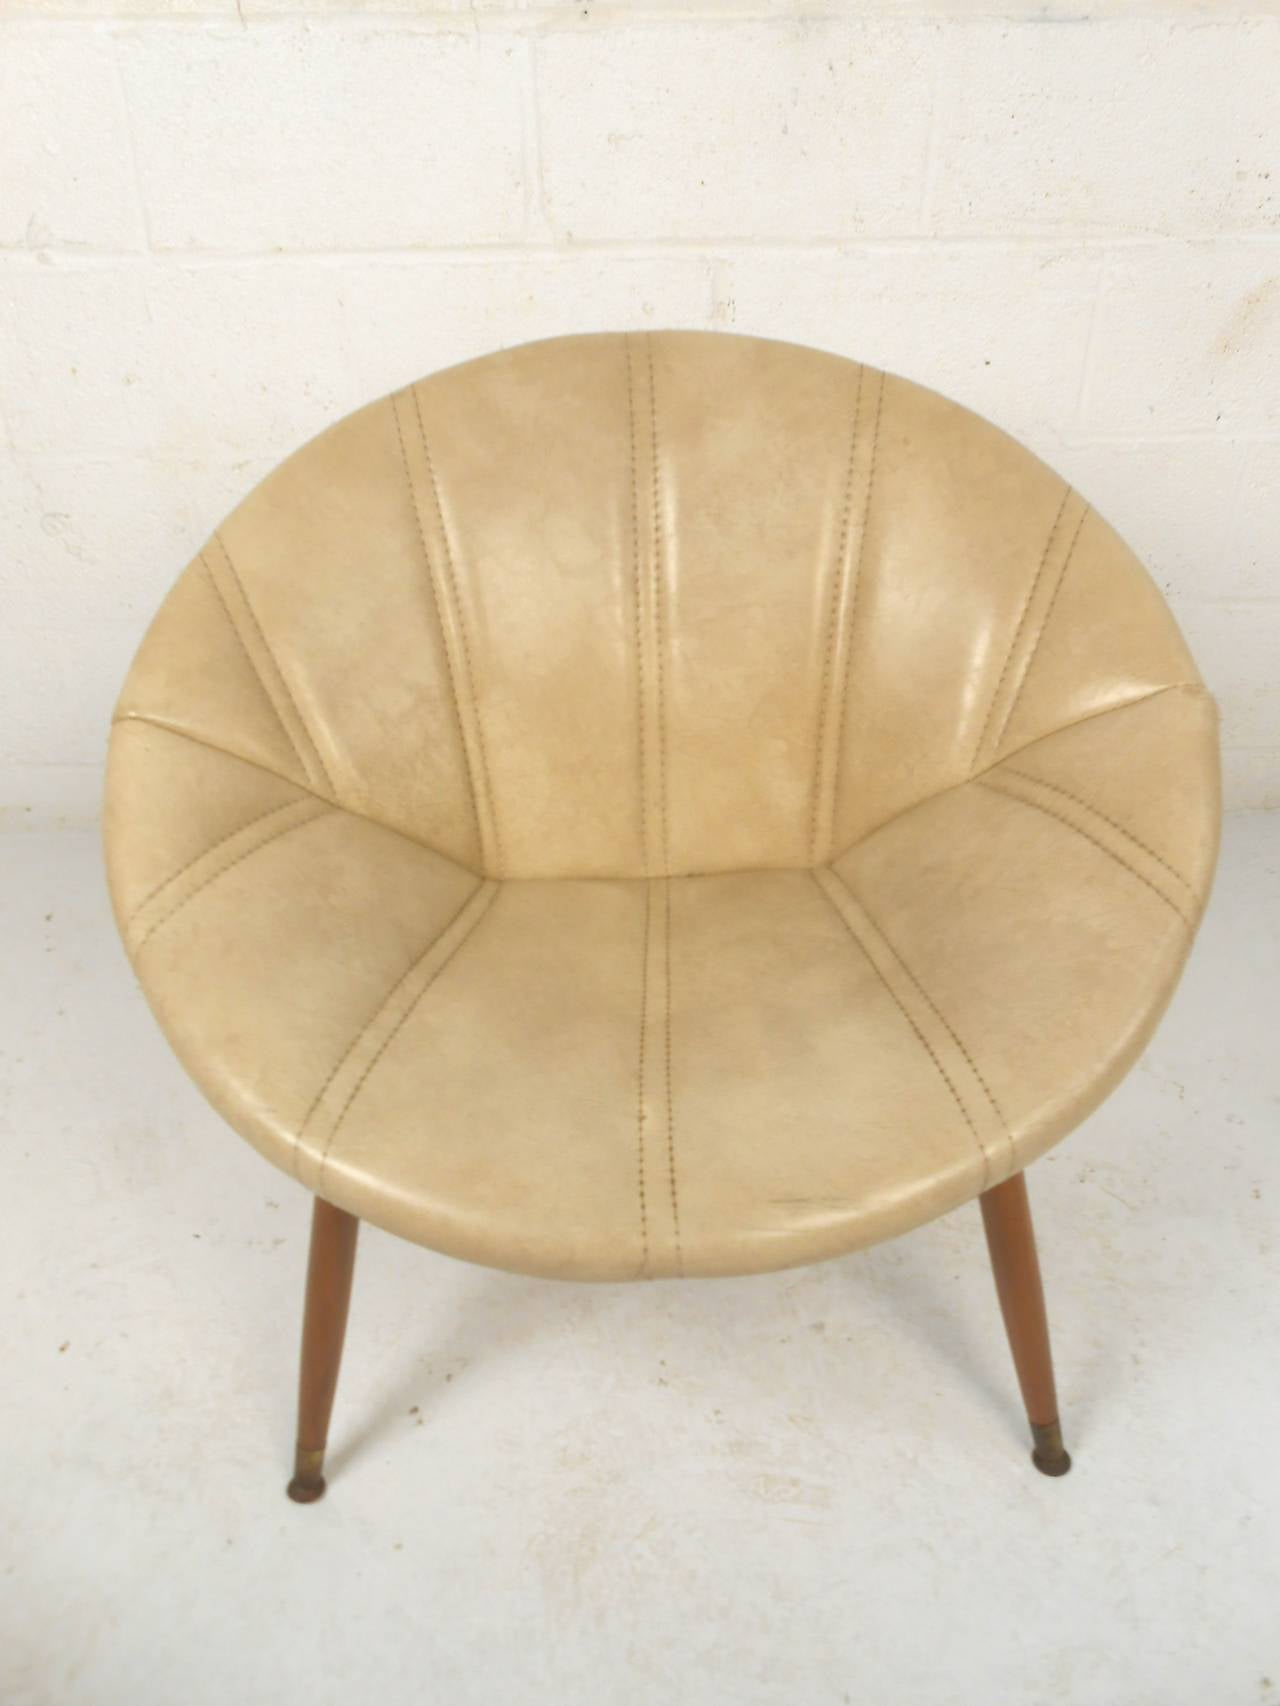 circular chairs for sale best desk chair round midcentury saucer at 1stdibs